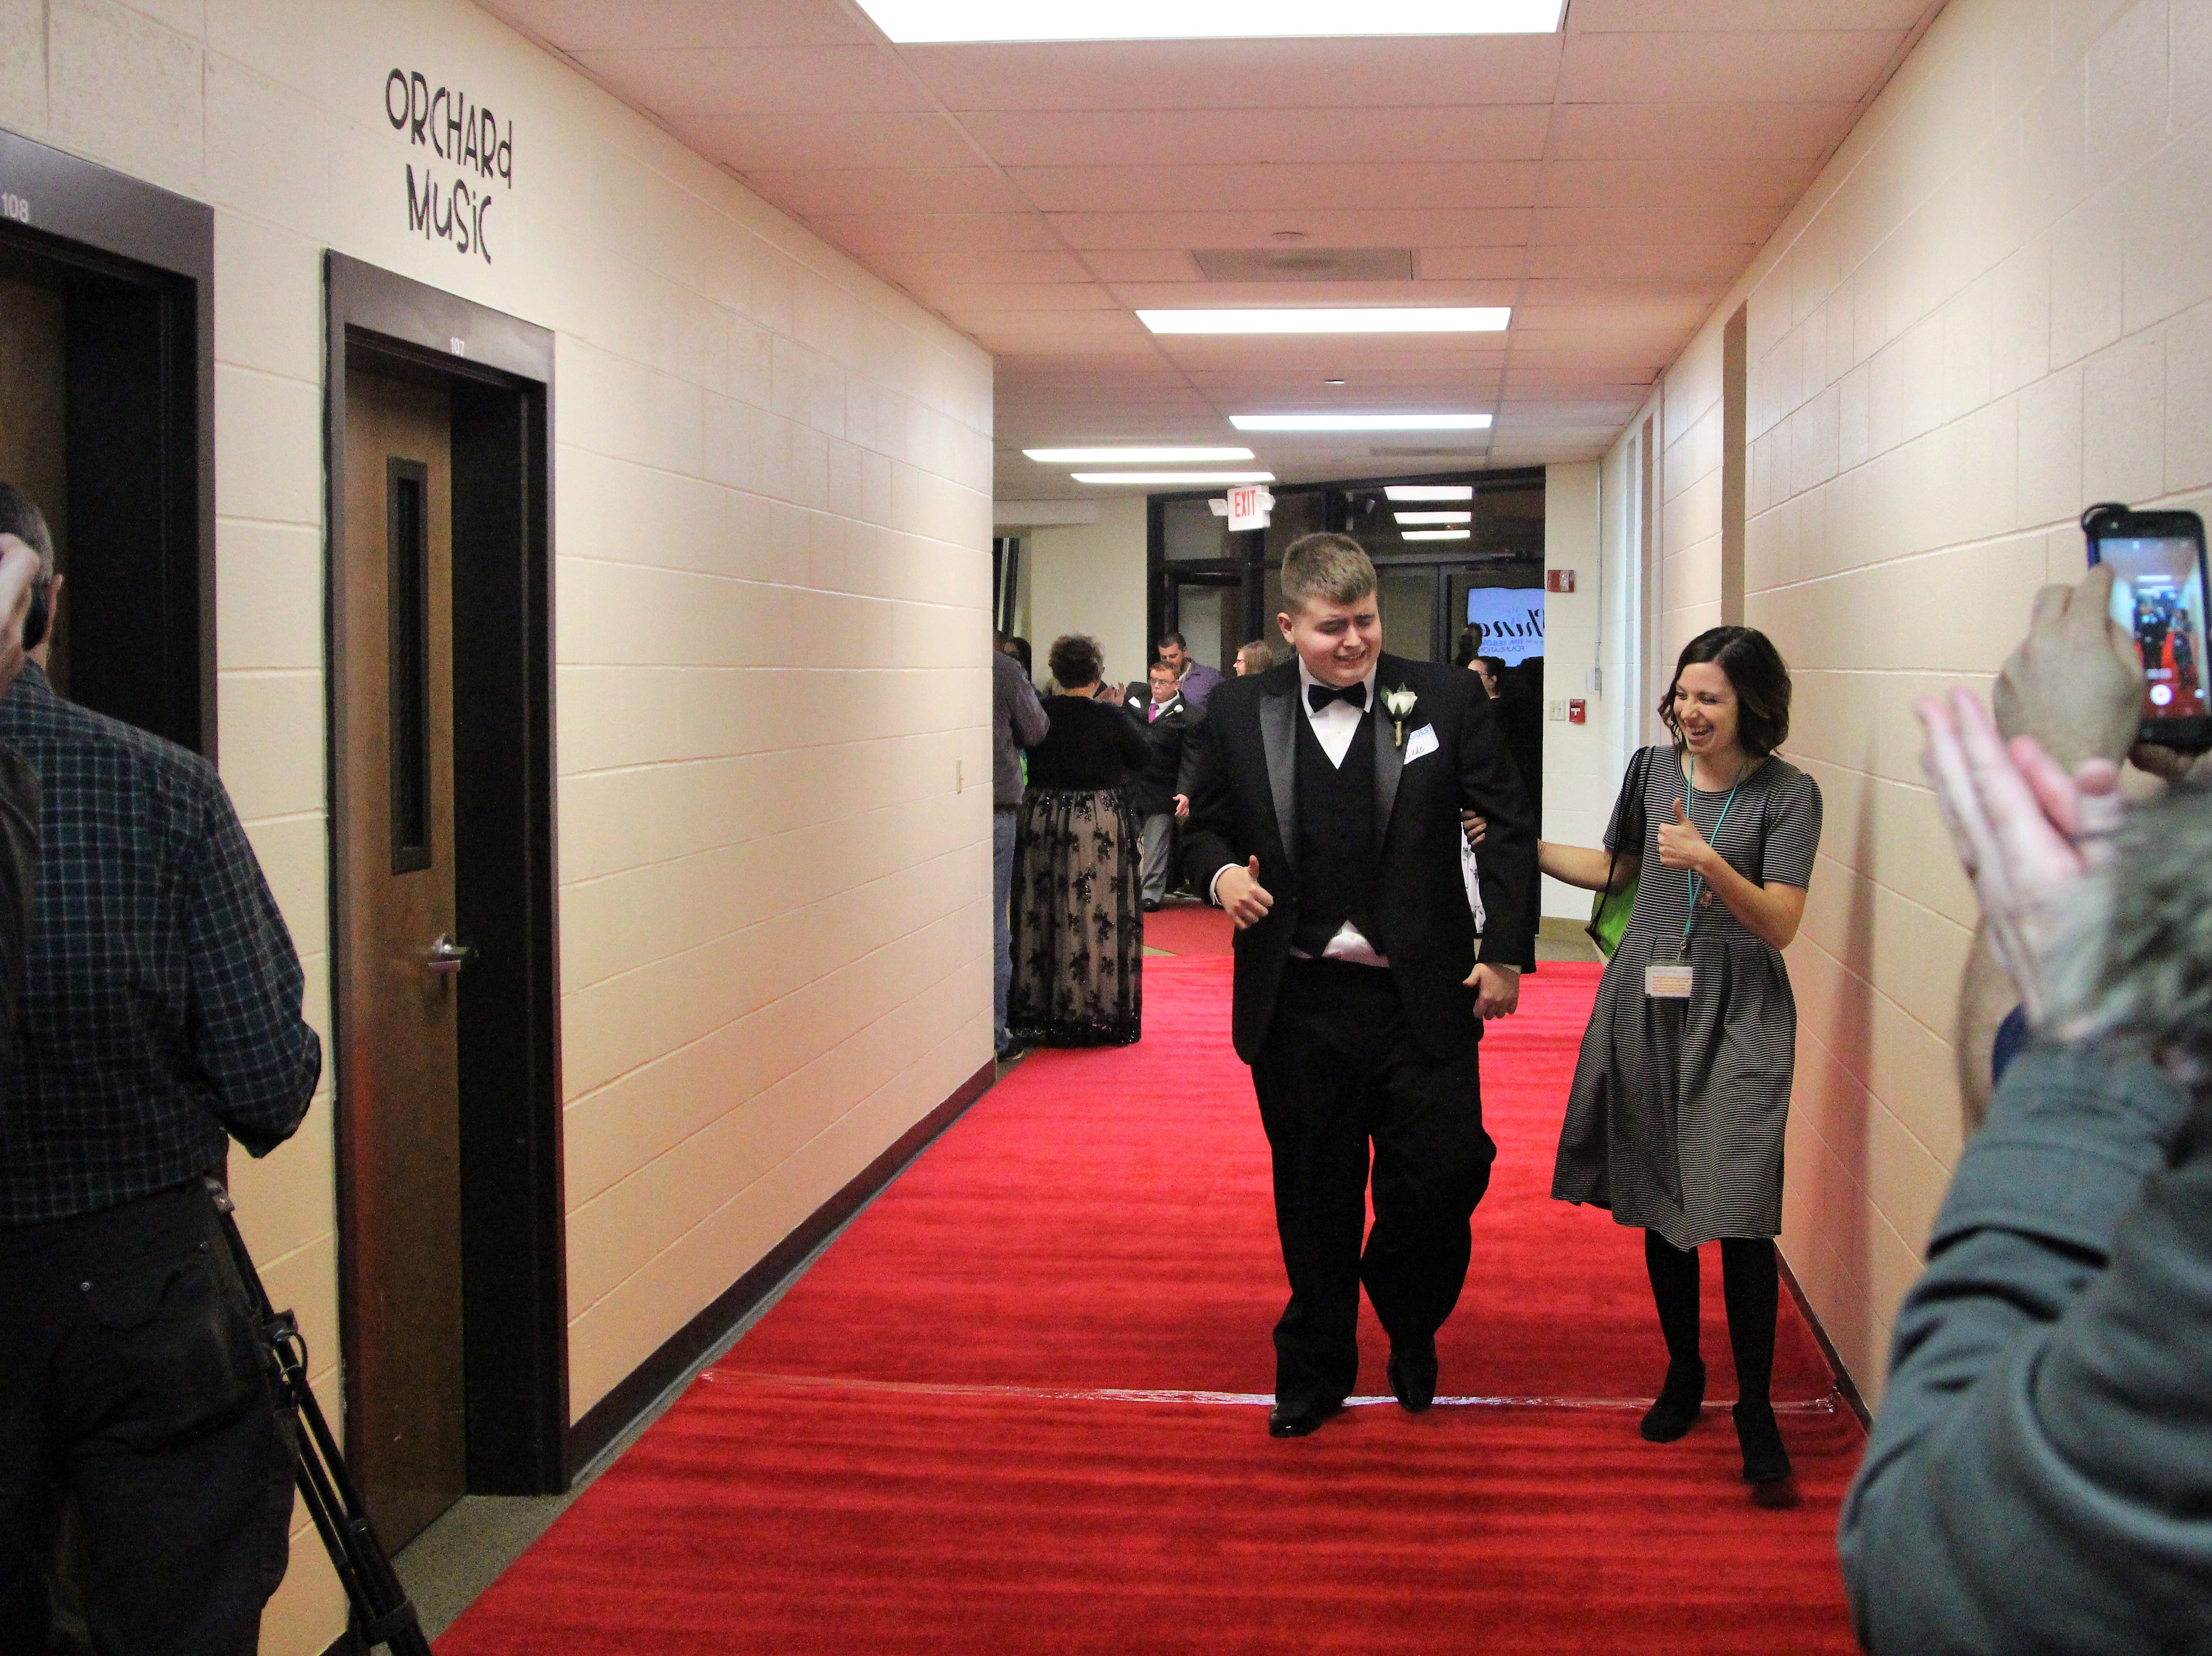 Each guest had their name called out before stepping foot onto the red carpet.